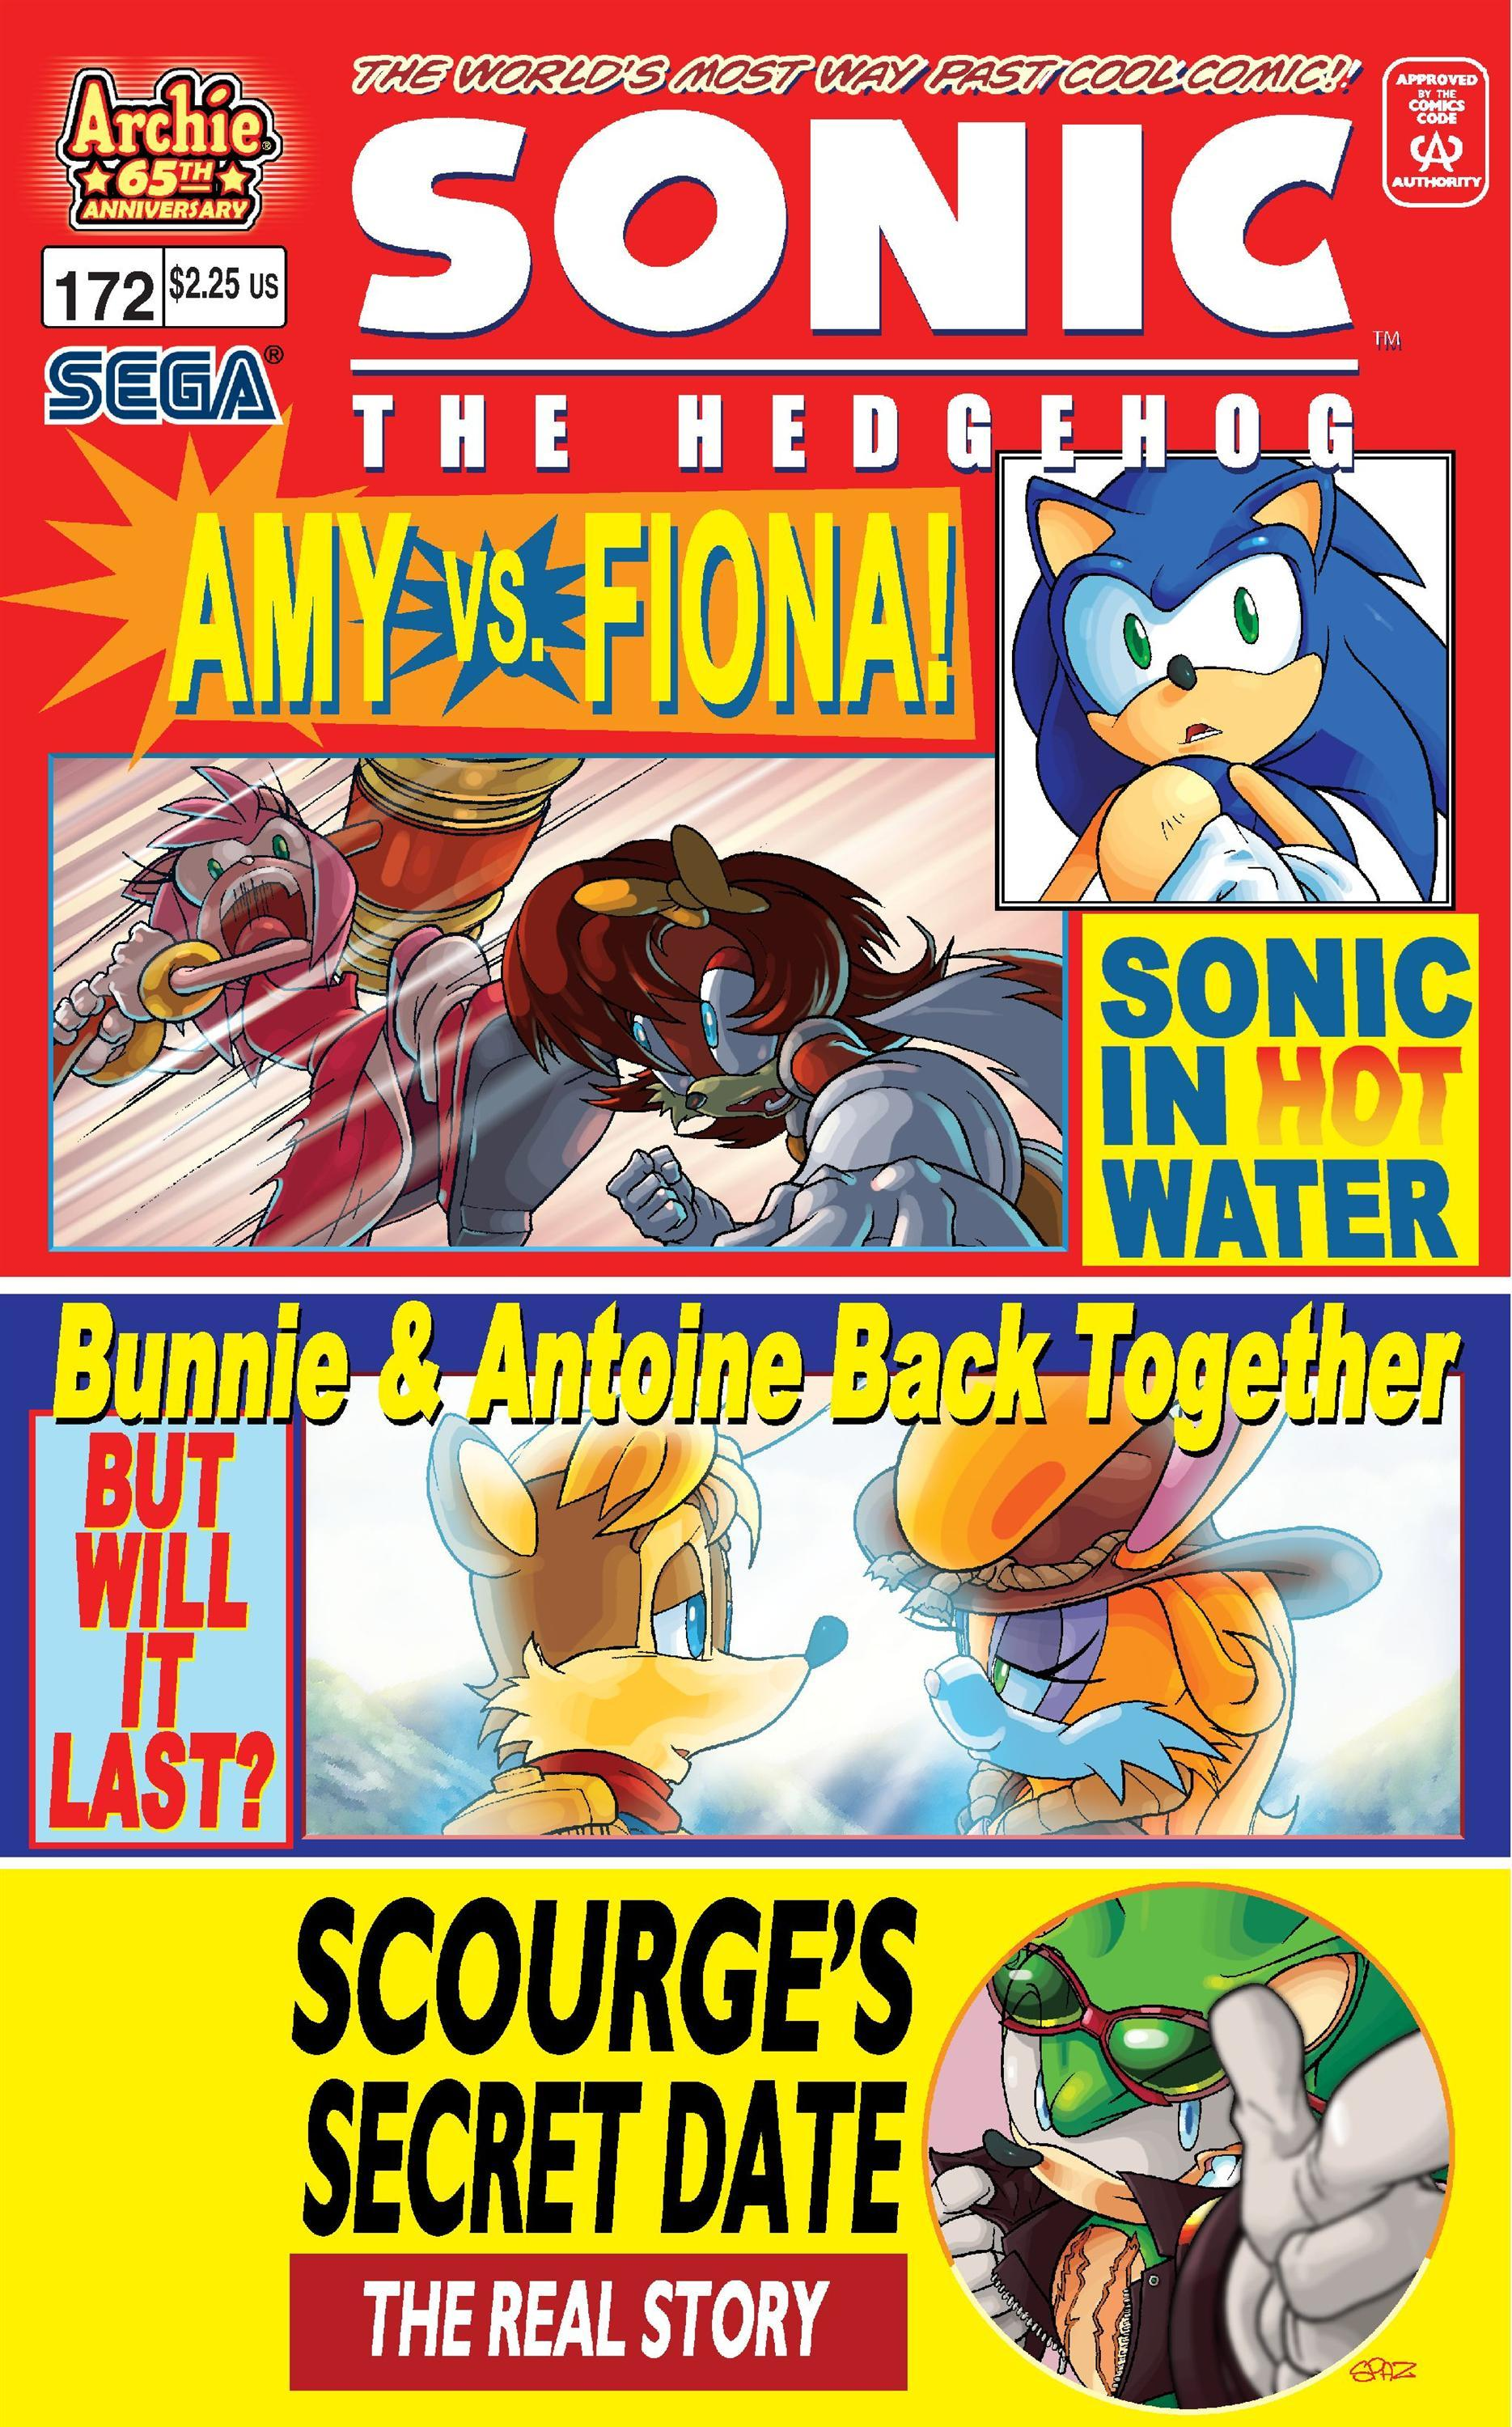 Archie Sonic The Hedgehog Issue 172 Sonic News Network